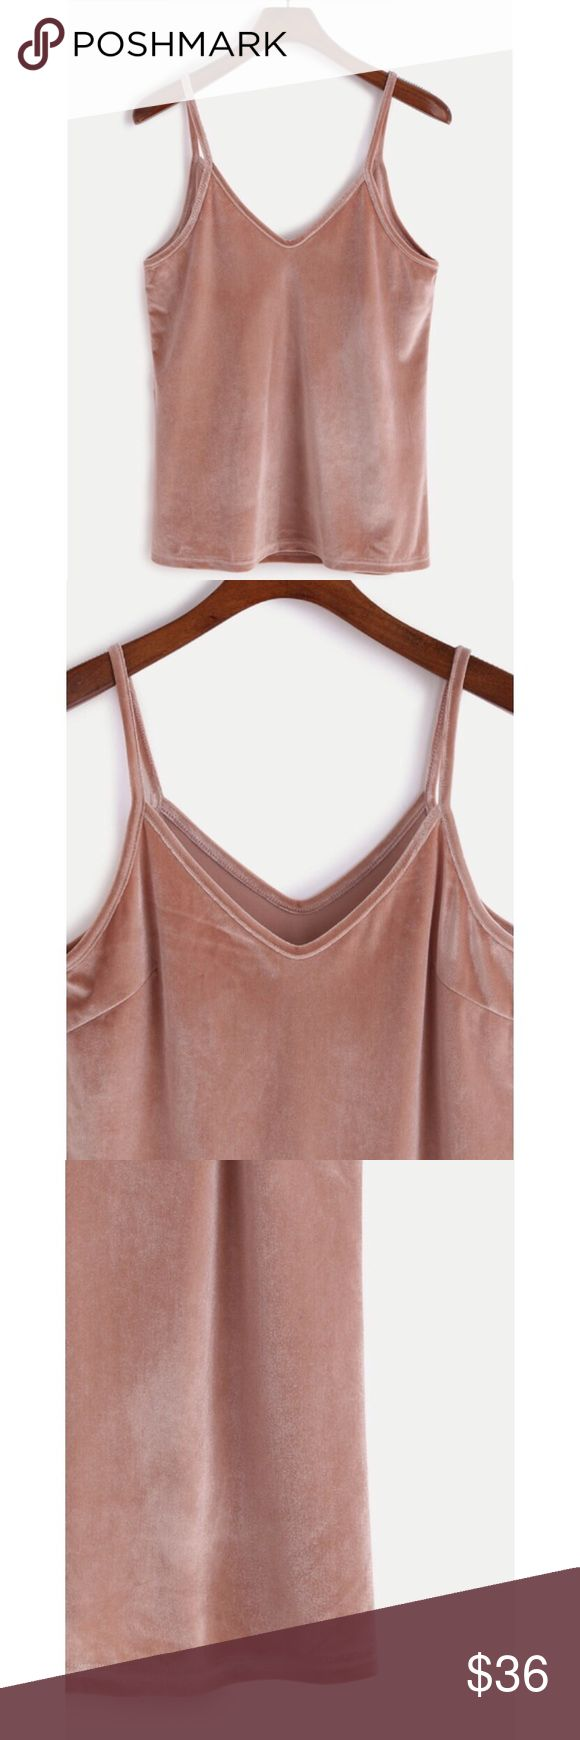 Dusty Pink Velvet Tank Perfect little pink cami top! Fun velvet texture spaghetti top. Trendy dusty pink color. Available in small Medium and large. NWT! Tops Camisoles